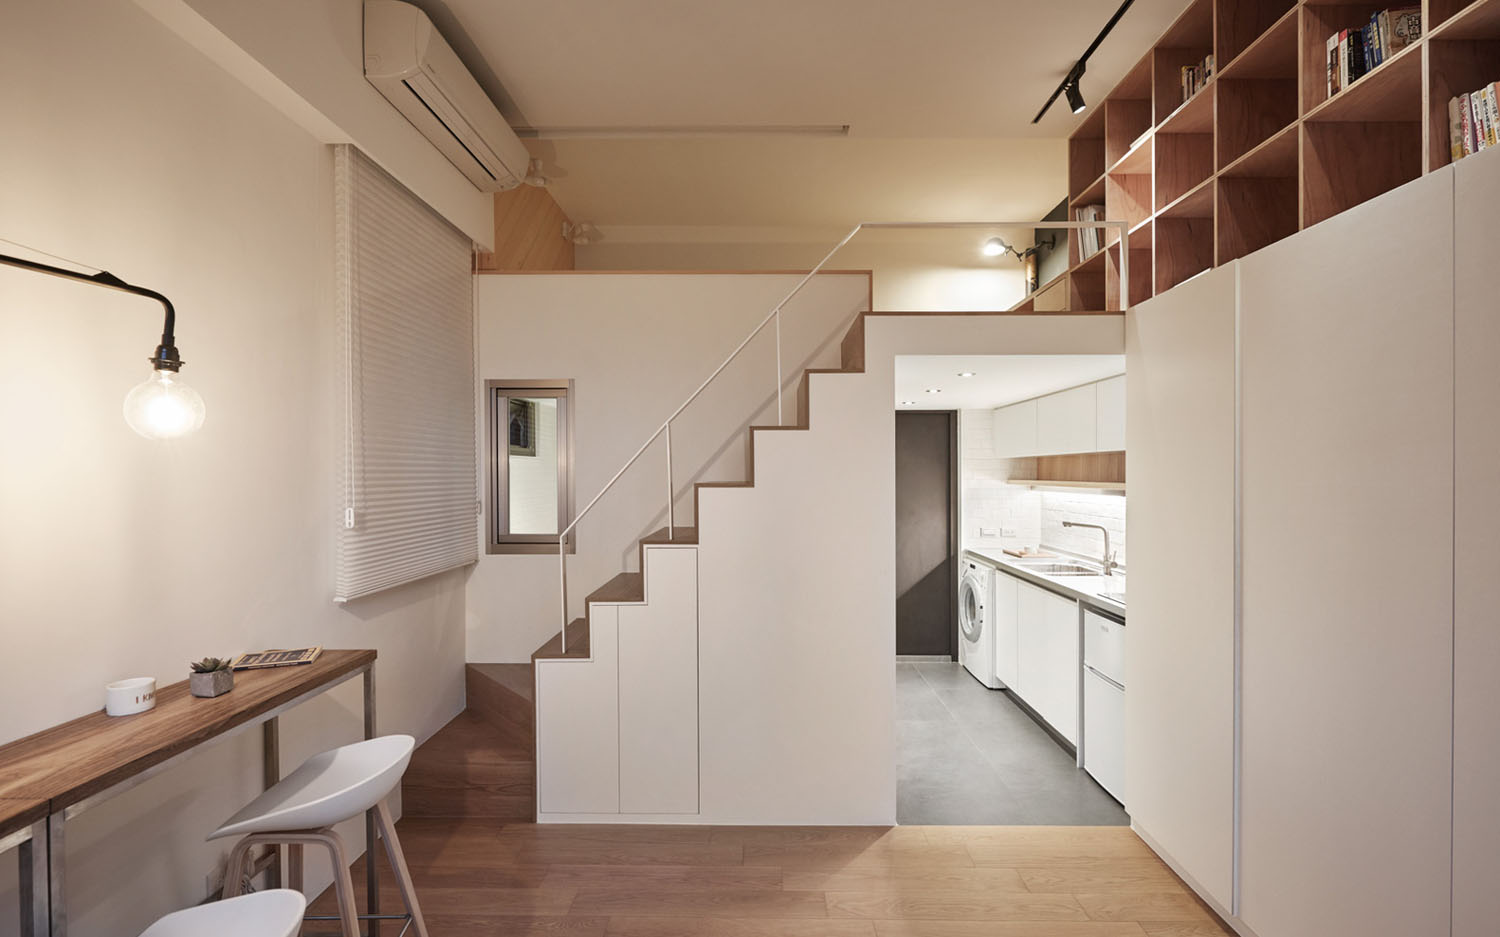 Micro Studio Apartment · Tiny Micro Apartment Kitchen